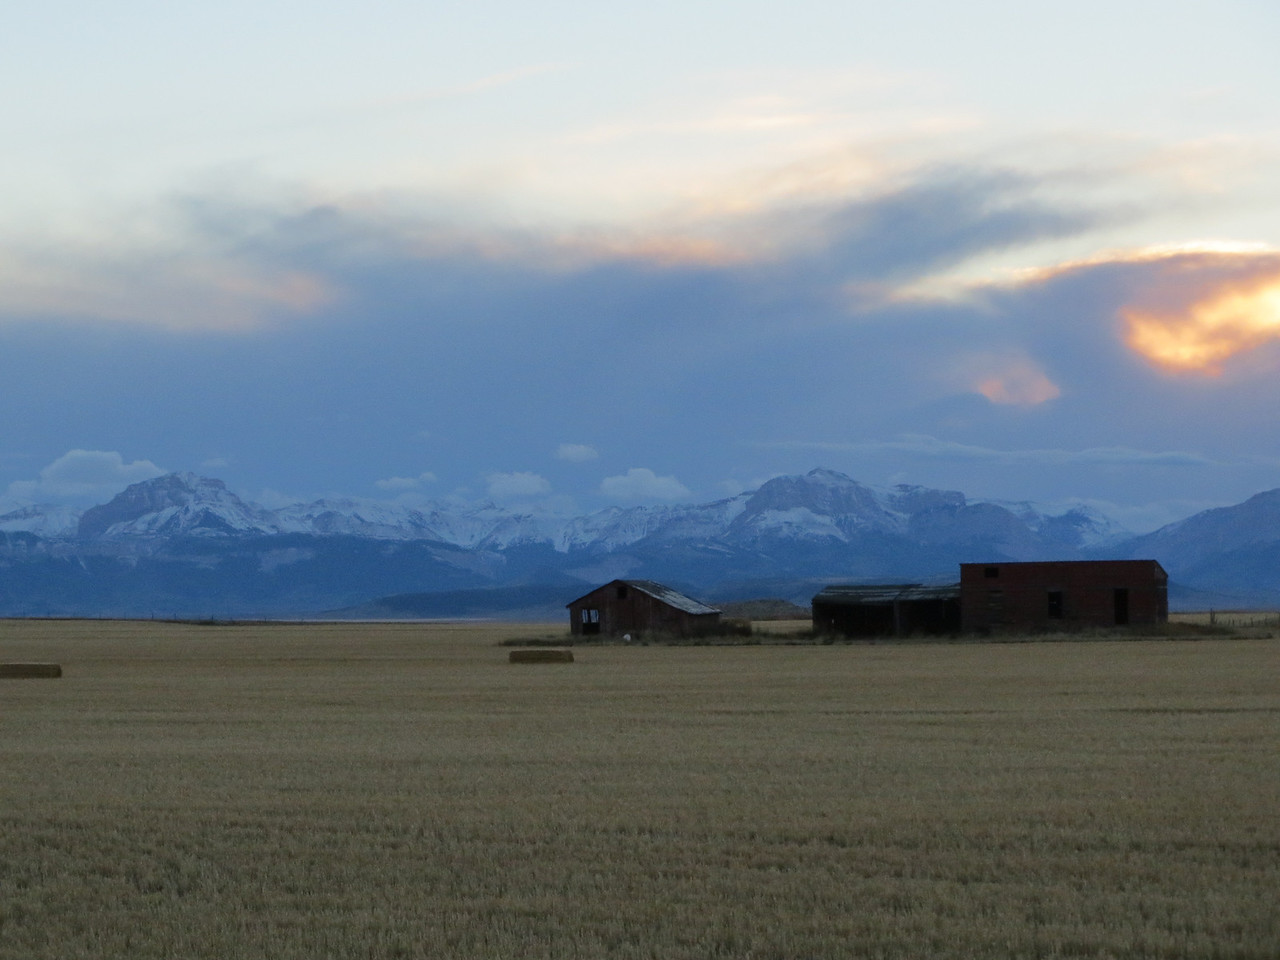 Sunset in the Rockies, MT